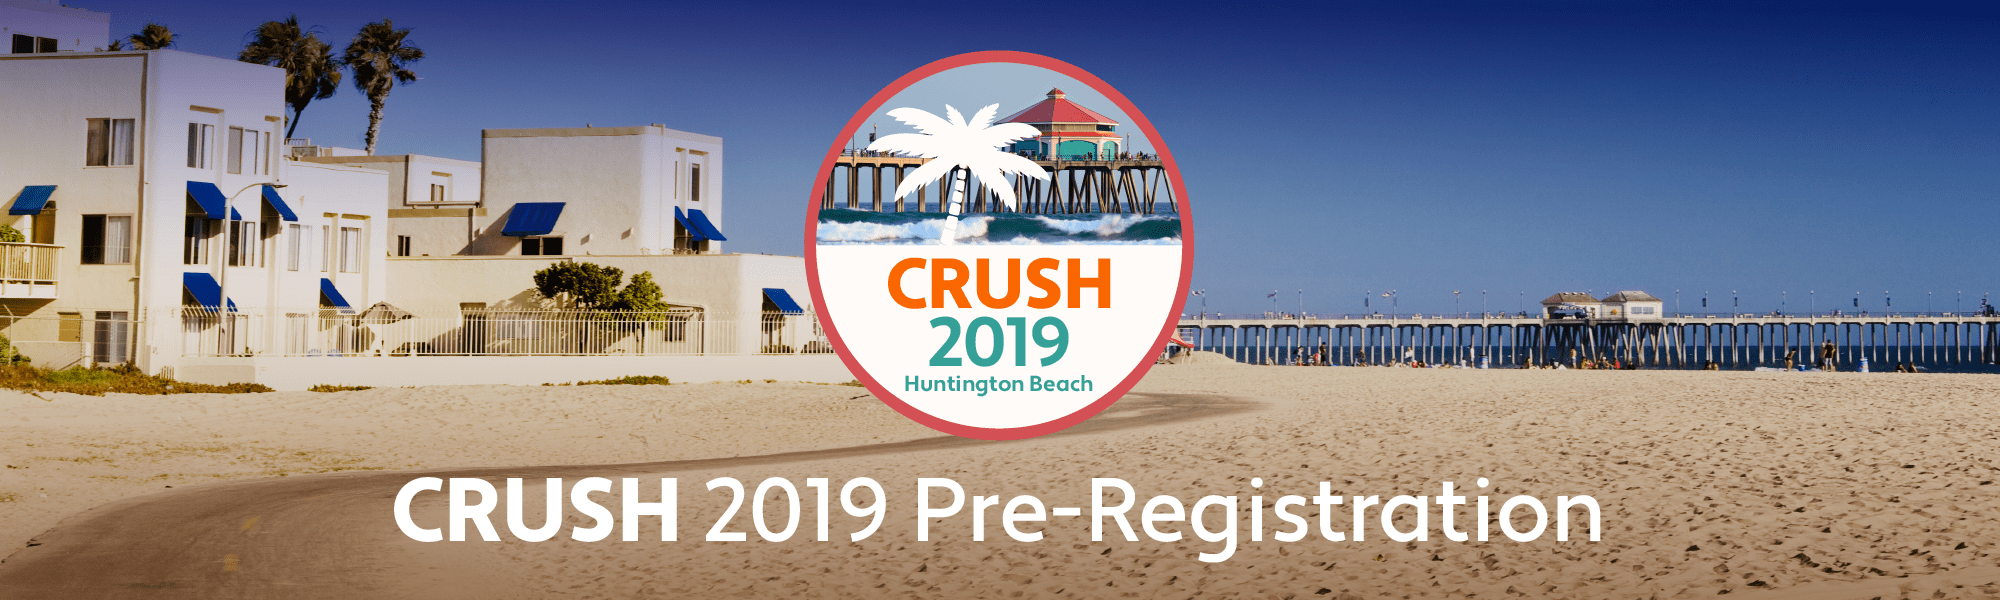 CRUSH 2019 Pre-Registration